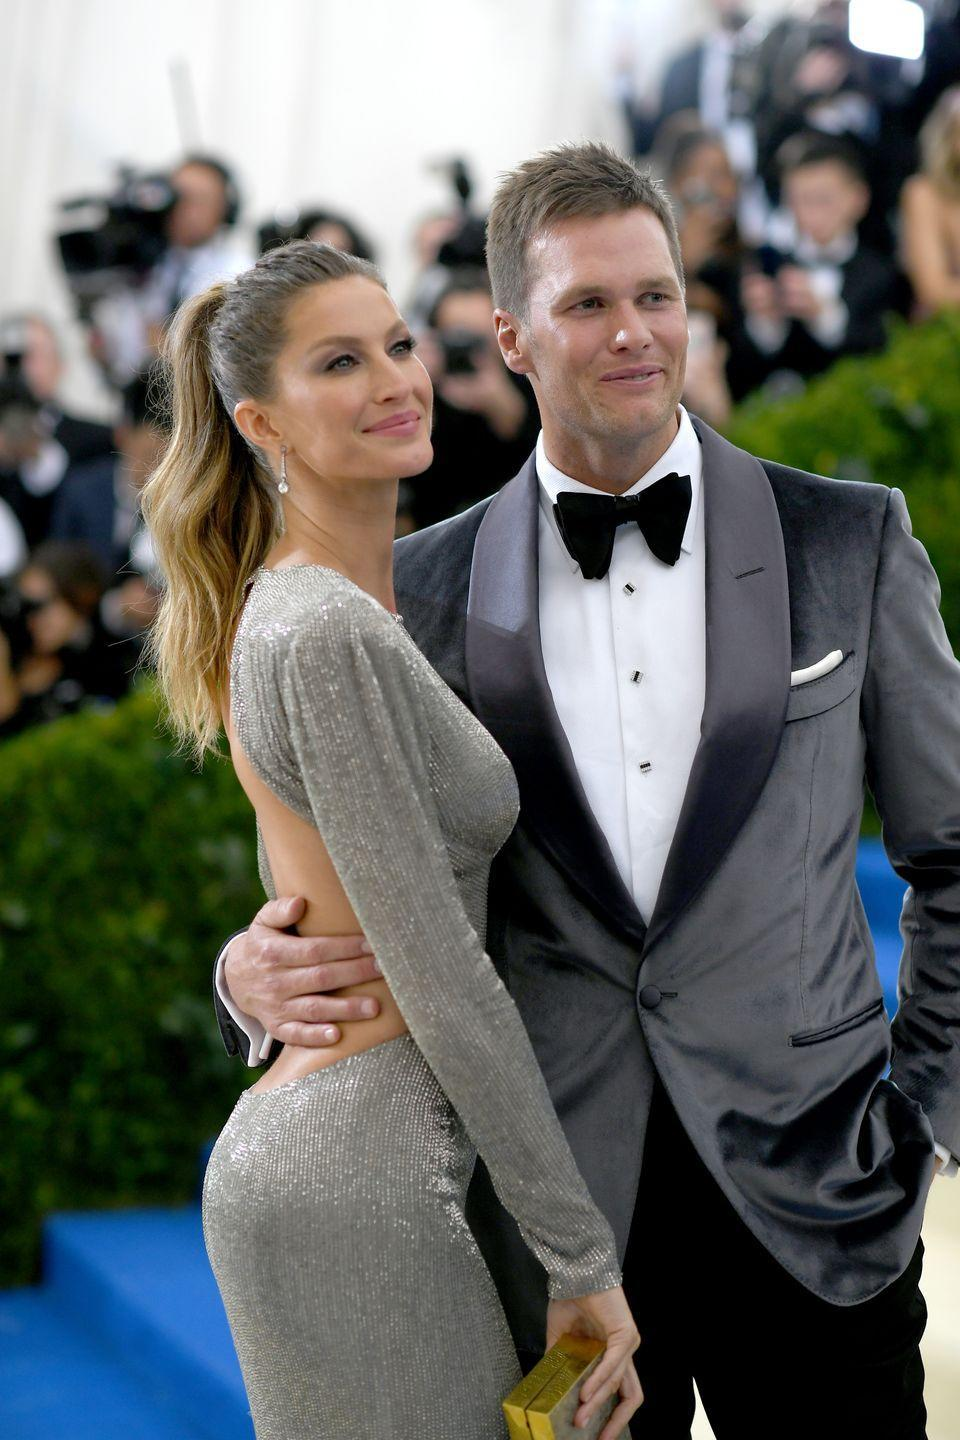 "<p>The model and quarterback met through a mutual friend who decided to play matchmaker.</p><p>""This friend told me he knew a girl version of me,"" the NFL player told <a href=""http://men.style.com/details/features/landing?id=content_10457"" rel=""nofollow noopener"" target=""_blank"" data-ylk=""slk:Details back in 2009"" class=""link rapid-noclick-resp"">Details back in 2009</a>. </p><p>The sparks that flew were mutual. ""I knew Tom was the one straightaway. I could see it in his eyes that he was a man with integrity who believes in the same things I do,"" Gisele told <a href=""http://www.vogue.co.uk/article/gisele-bundchen-british-vogue-cover-march-2015"" rel=""nofollow noopener"" target=""_blank"" data-ylk=""slk:Vogue"" class=""link rapid-noclick-resp"">Vogue</a>.</p>"